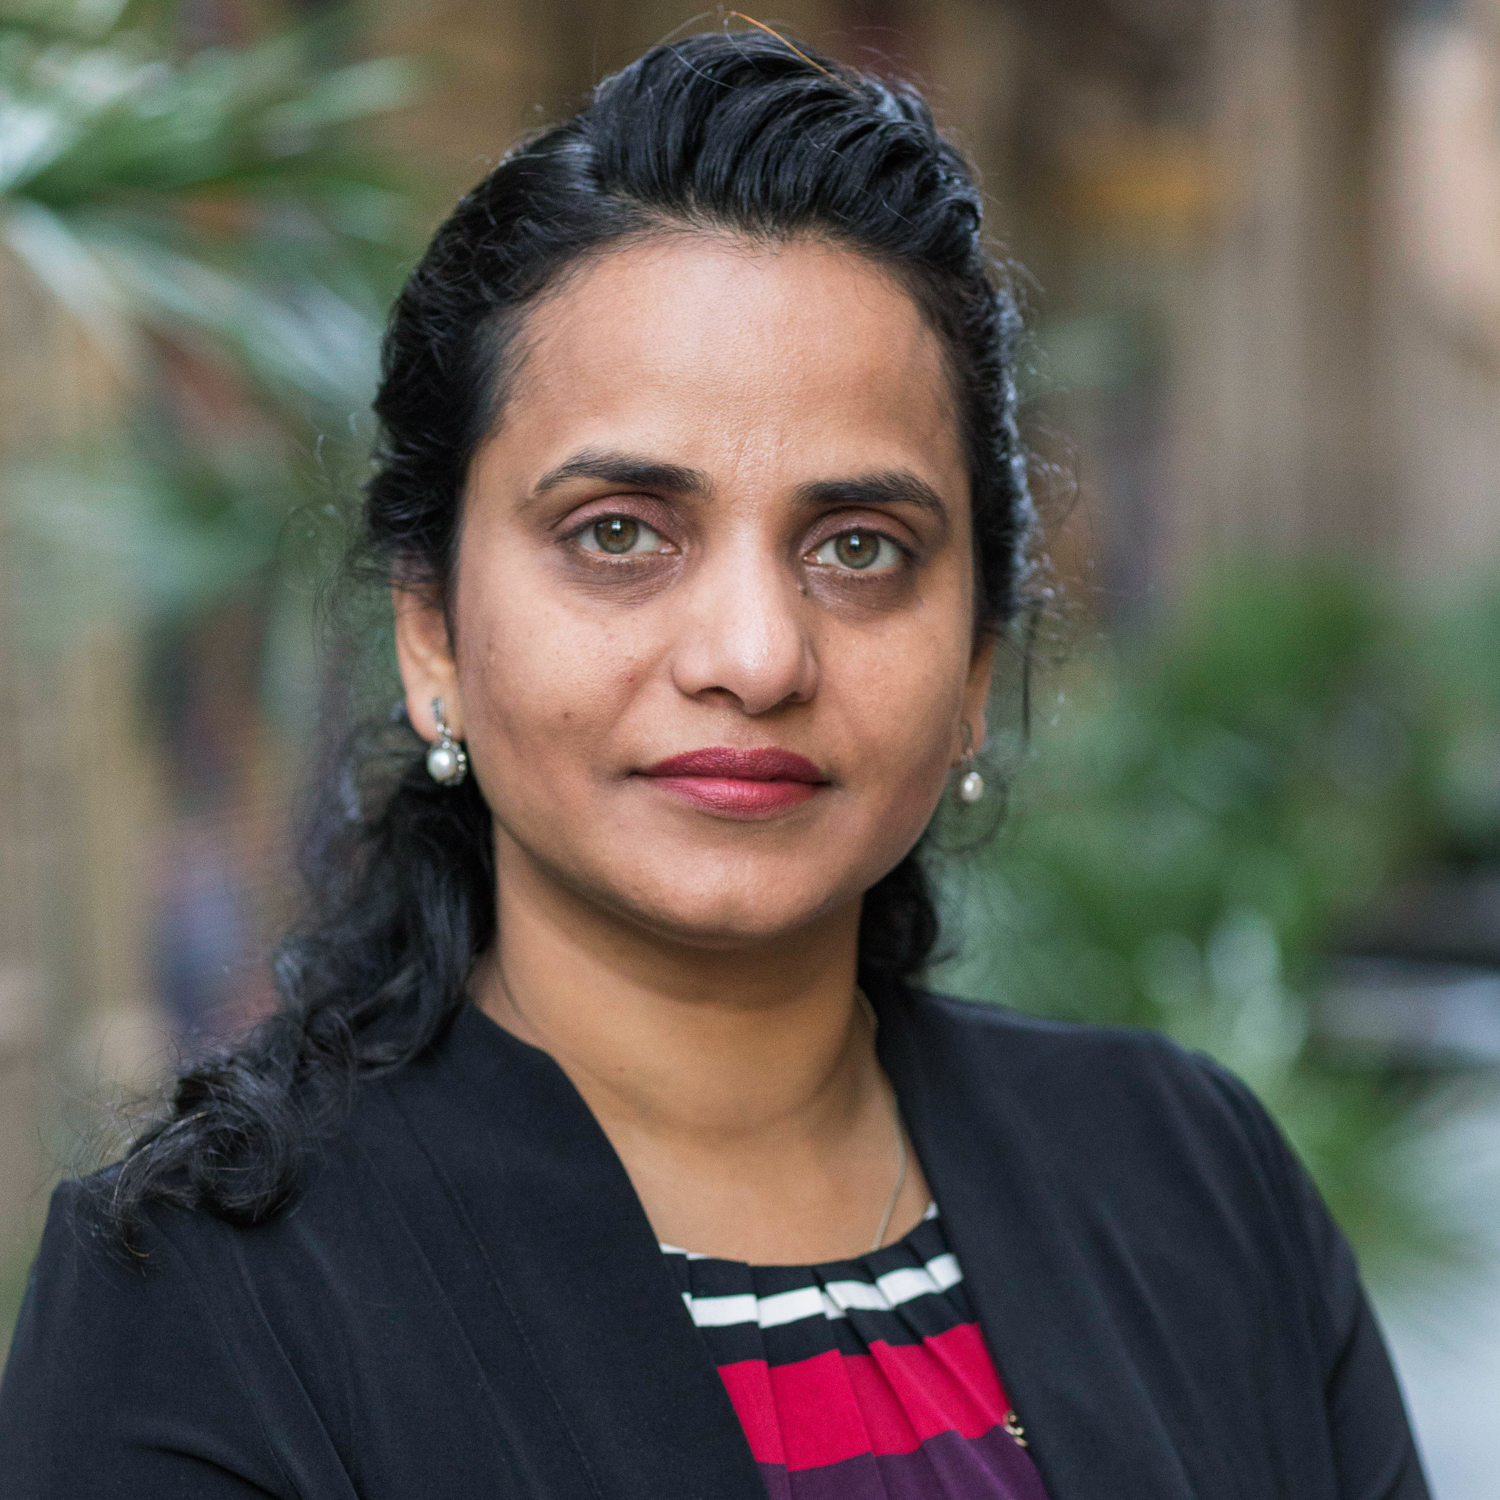 Anila Noor, member of the European Migrant Advisory Board